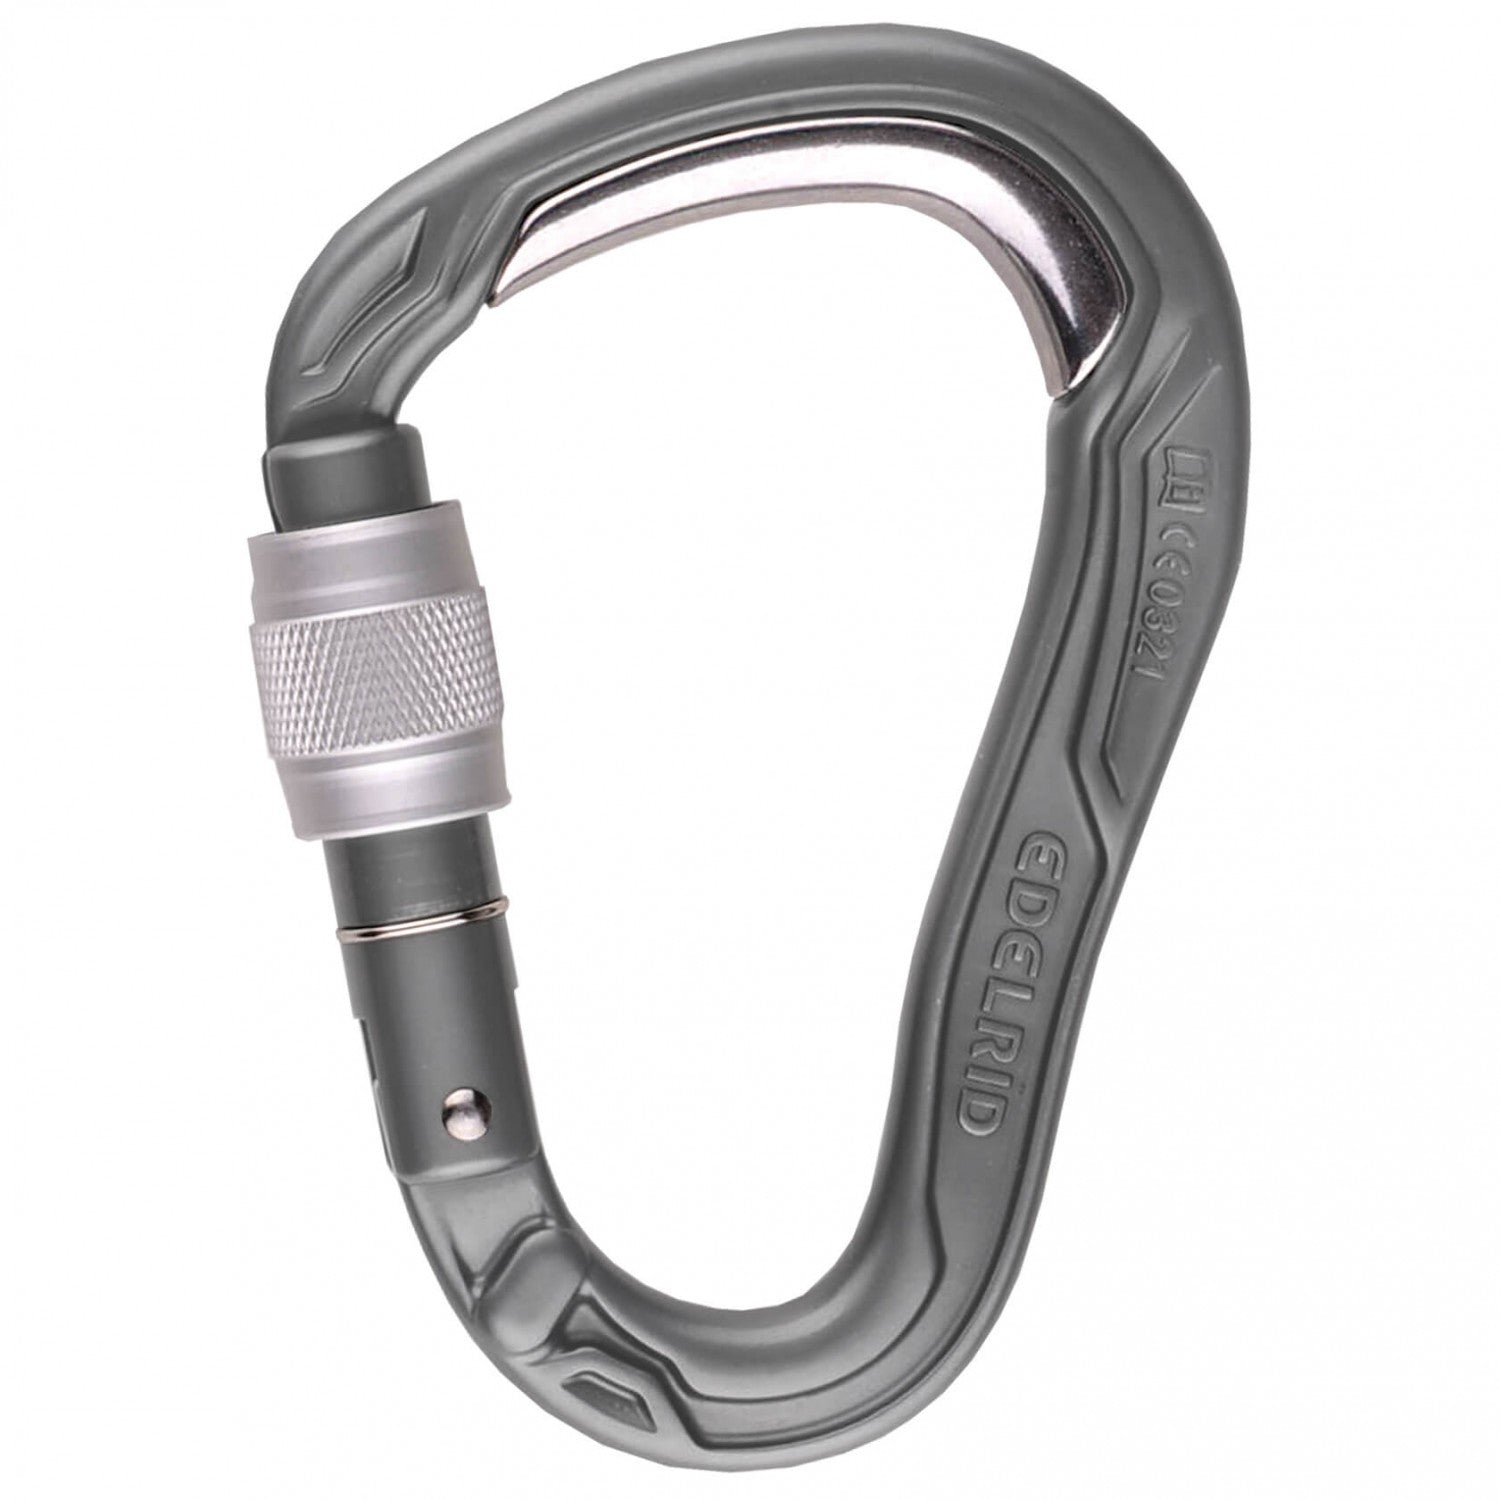 Edelrid HMS Bulletproof Screw carabiner, in grey colour with a silver screw